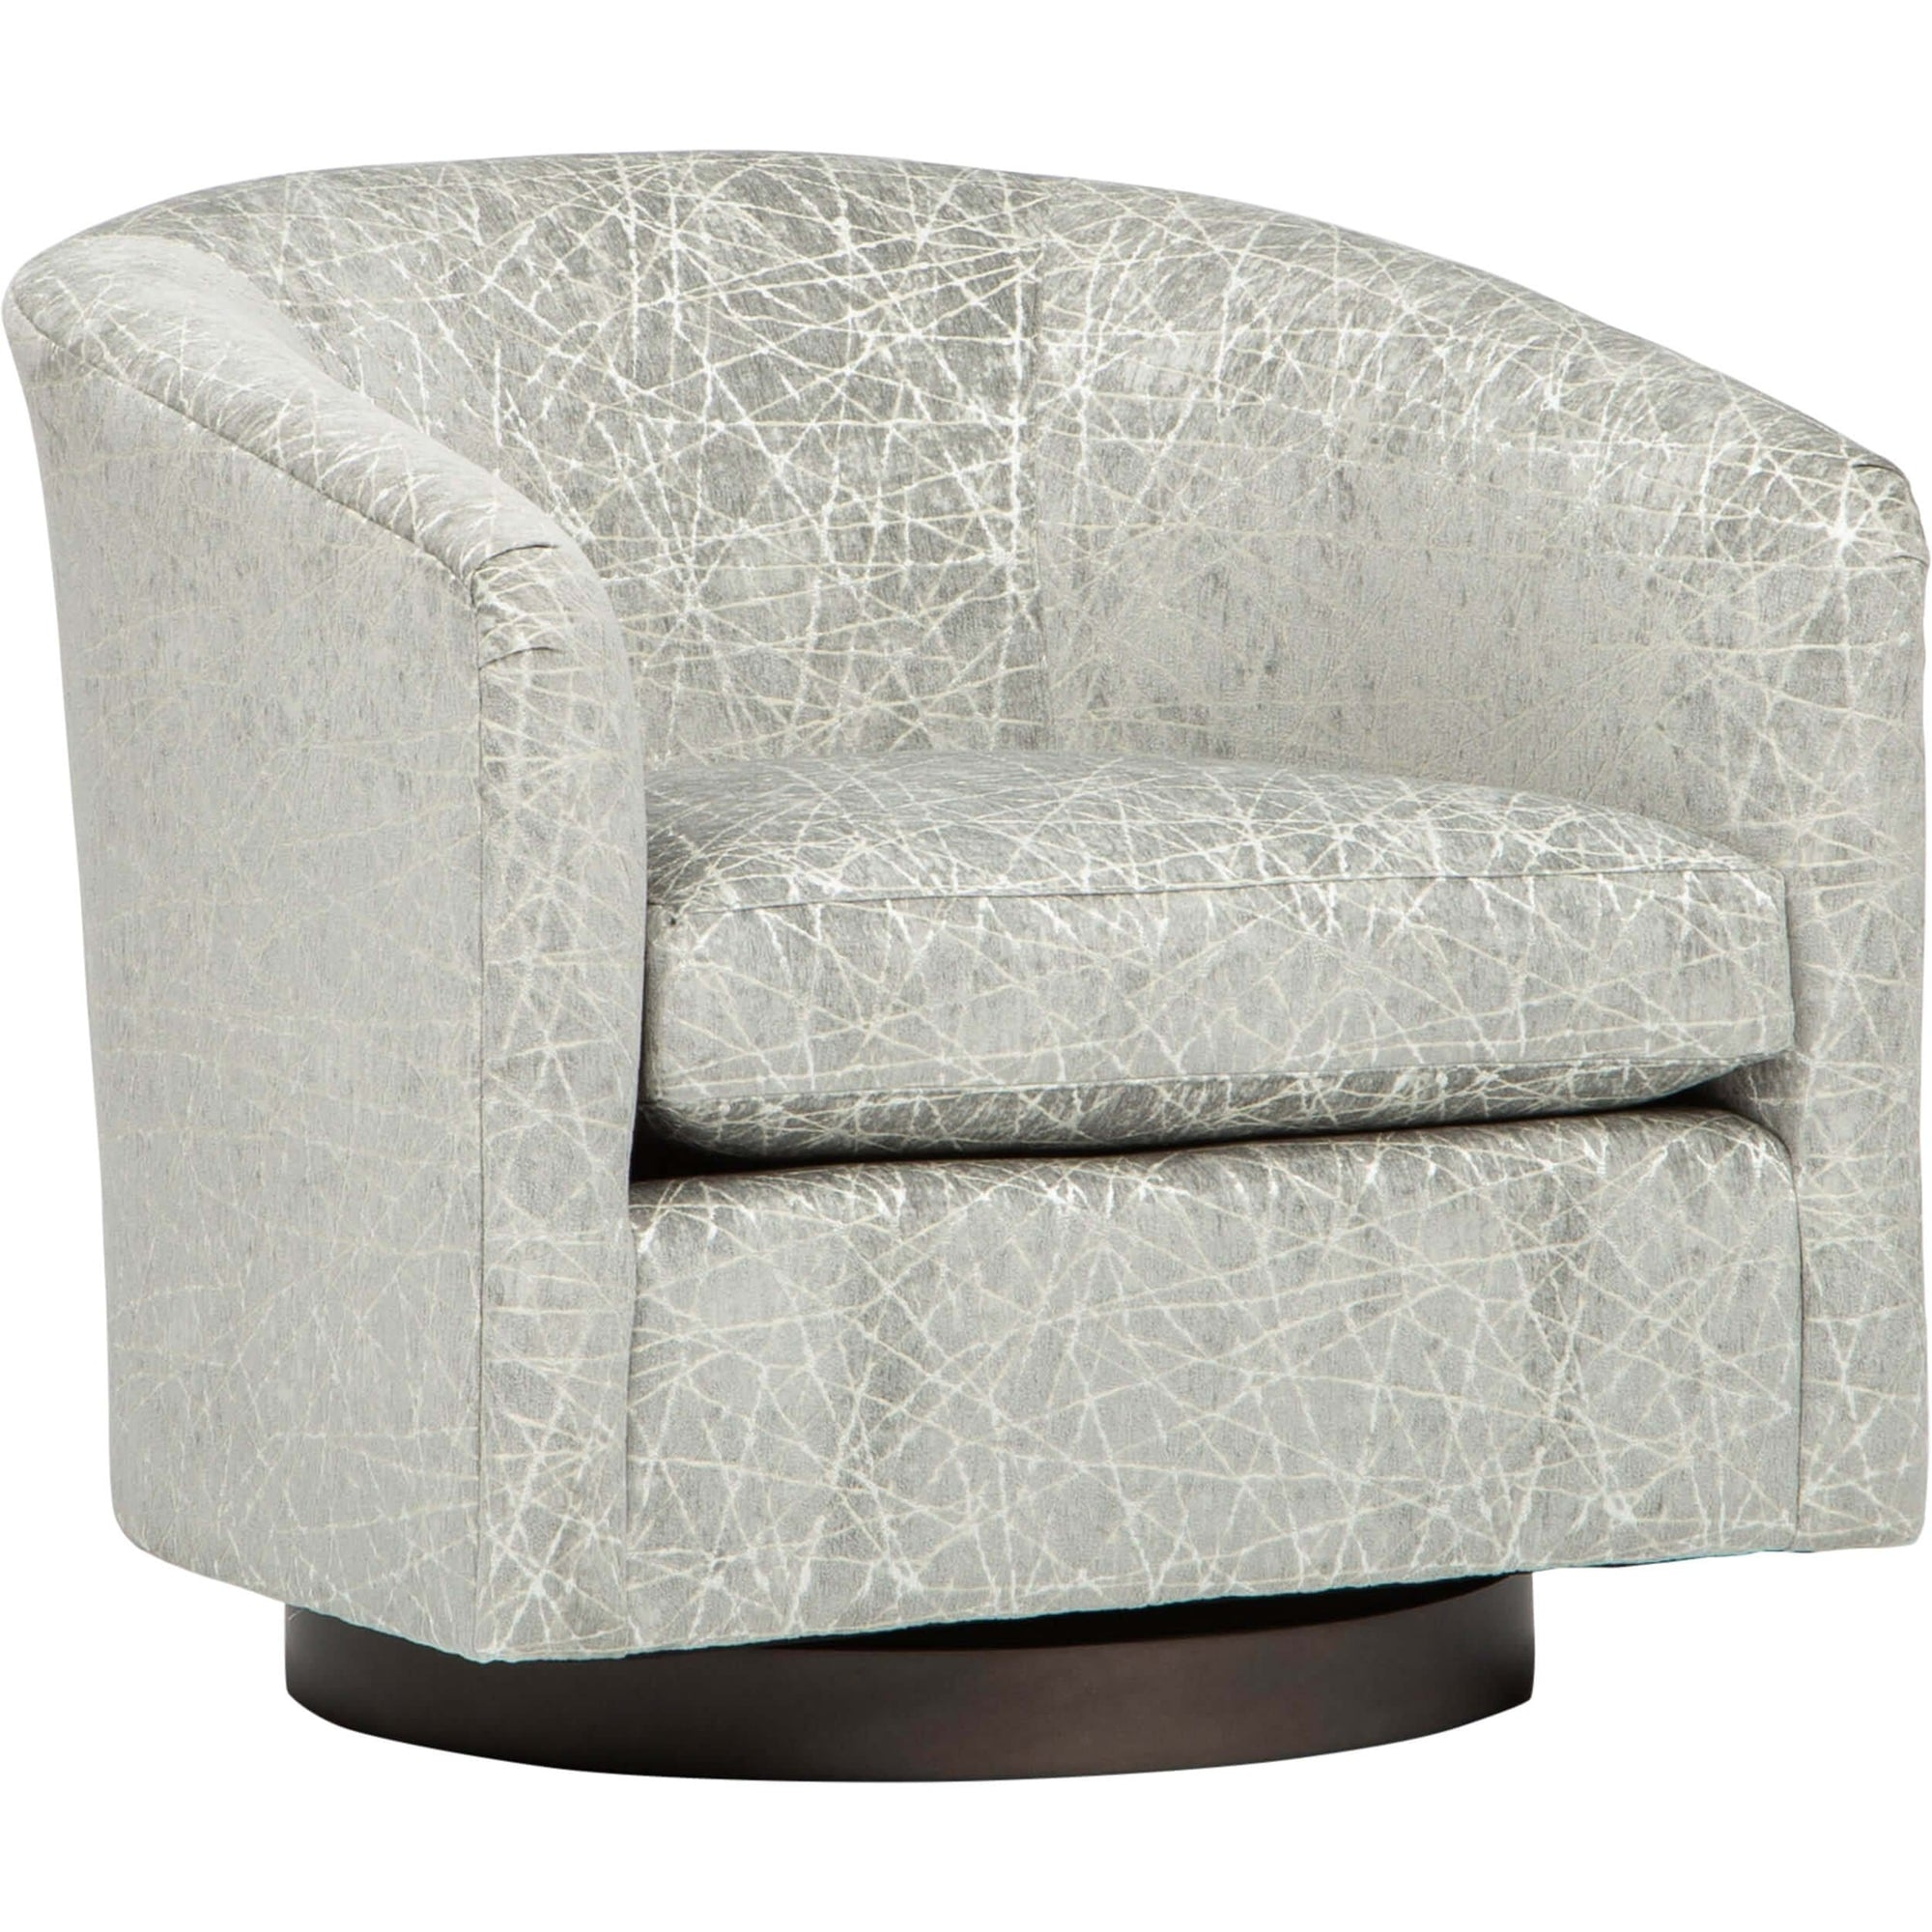 Stupendous Coltrane Swivel Chair Jax Platinum Jax Platinum Creativecarmelina Interior Chair Design Creativecarmelinacom